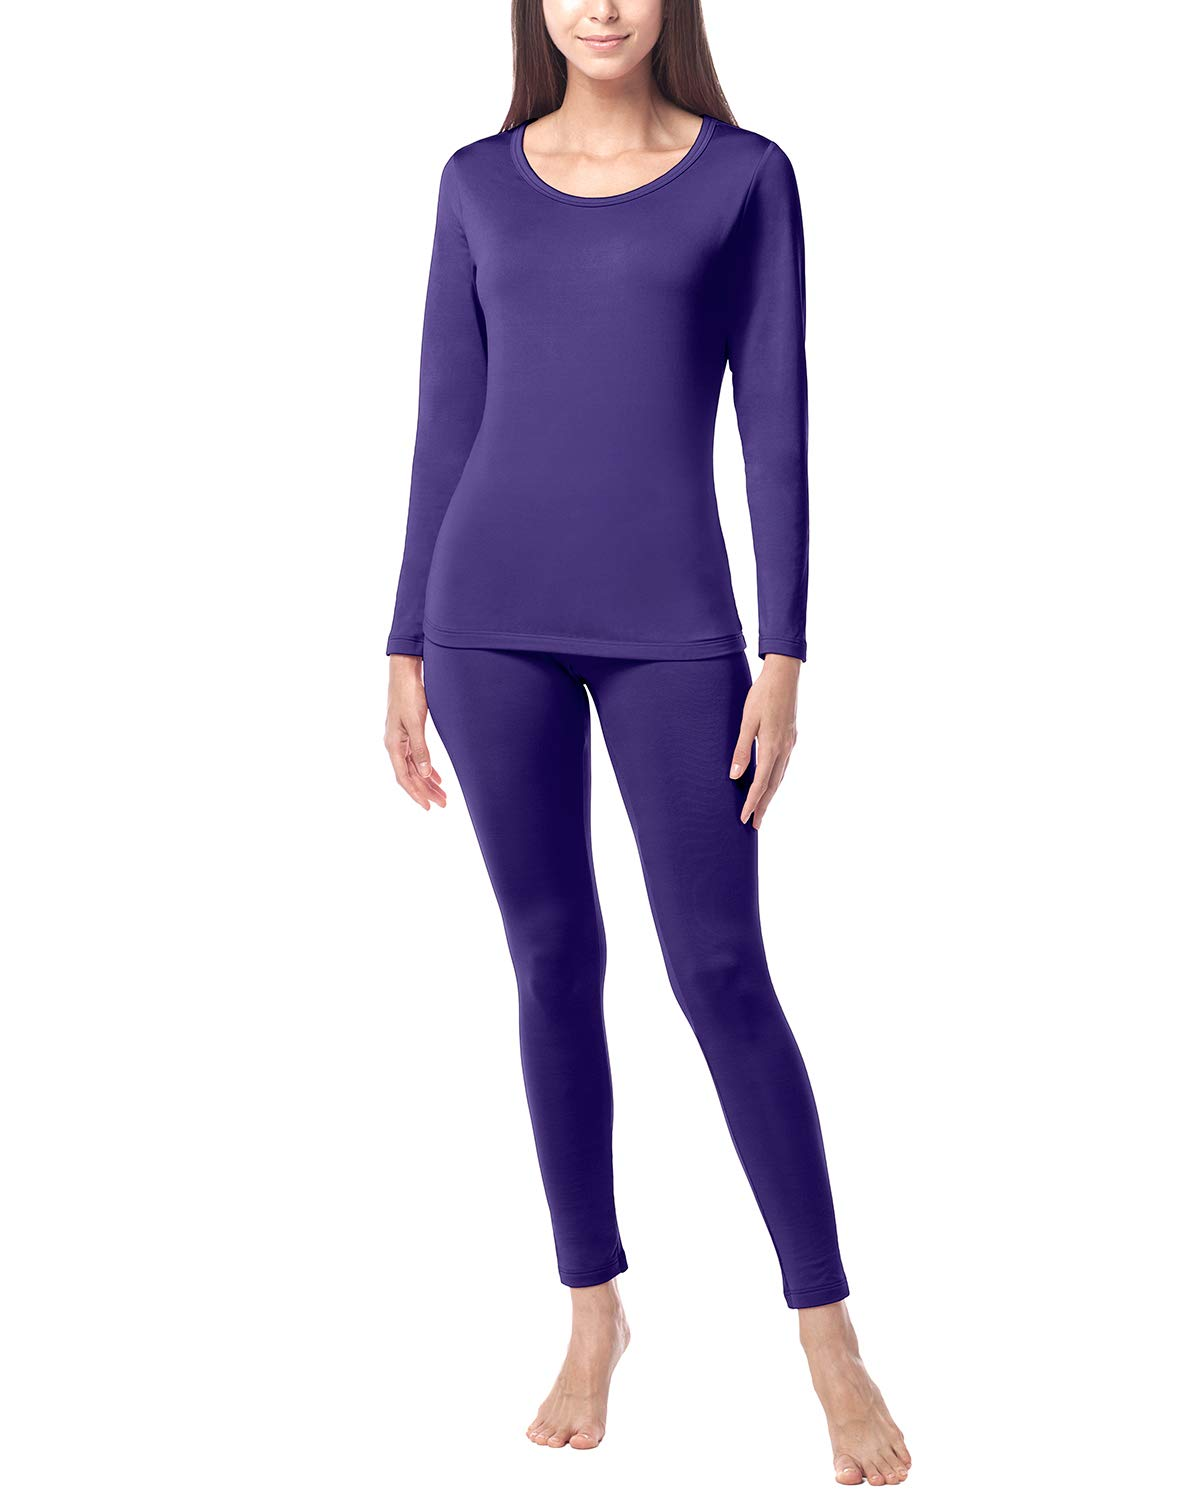 LAPASA Women's Lightweight Thermal Underwear Long John Set Fleece Lined Base Layer Top and Bottom L17 (XX-Large, Purple) by LAPASA